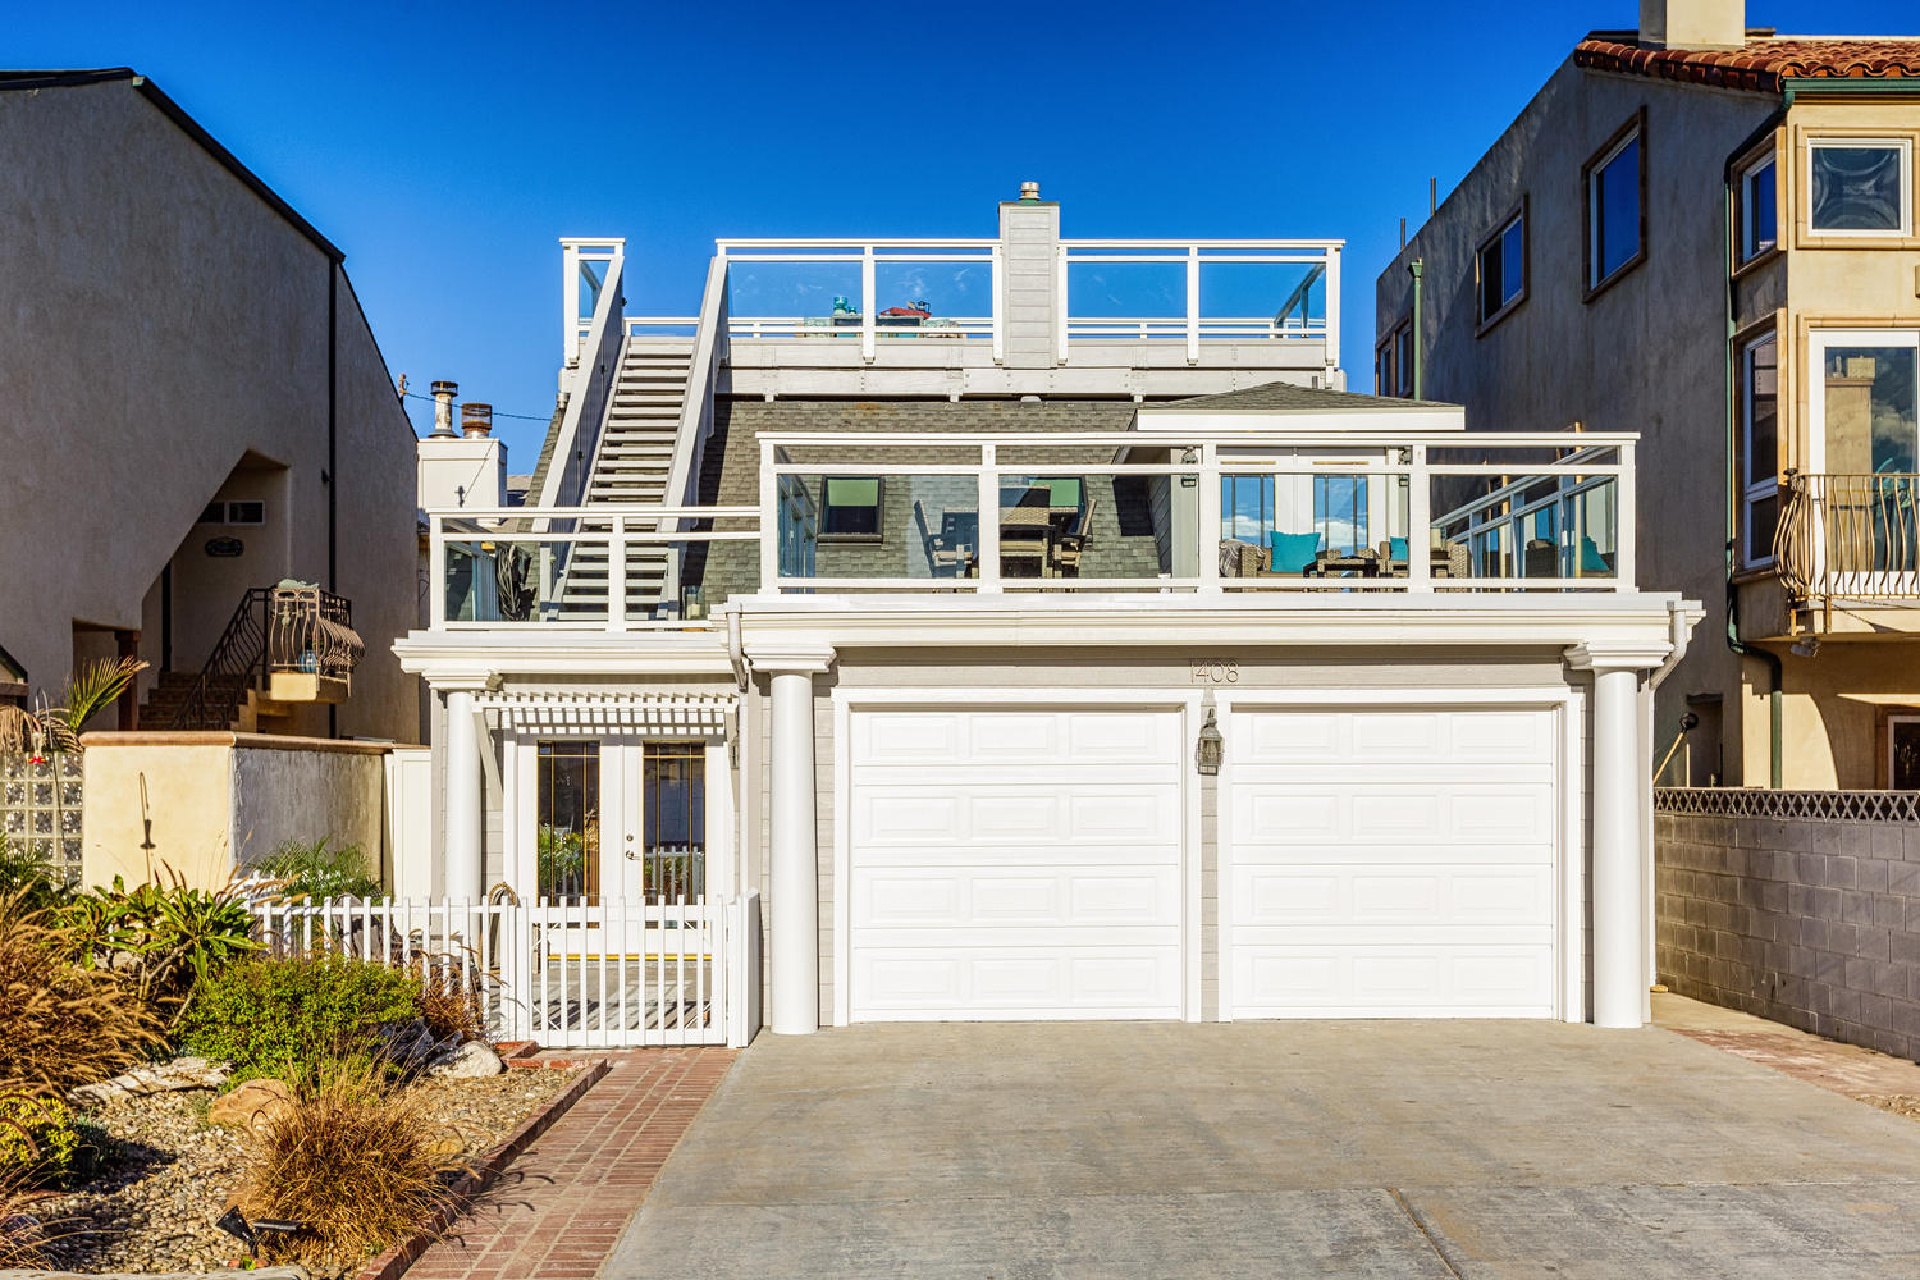 http://addressrealestate.com/media/images/blogs/38/2/b_28-1408-ocean-dr-oxnard-ca-93035-mls-size-025-24-front-of-home-1500x1000-72dpi.jpg